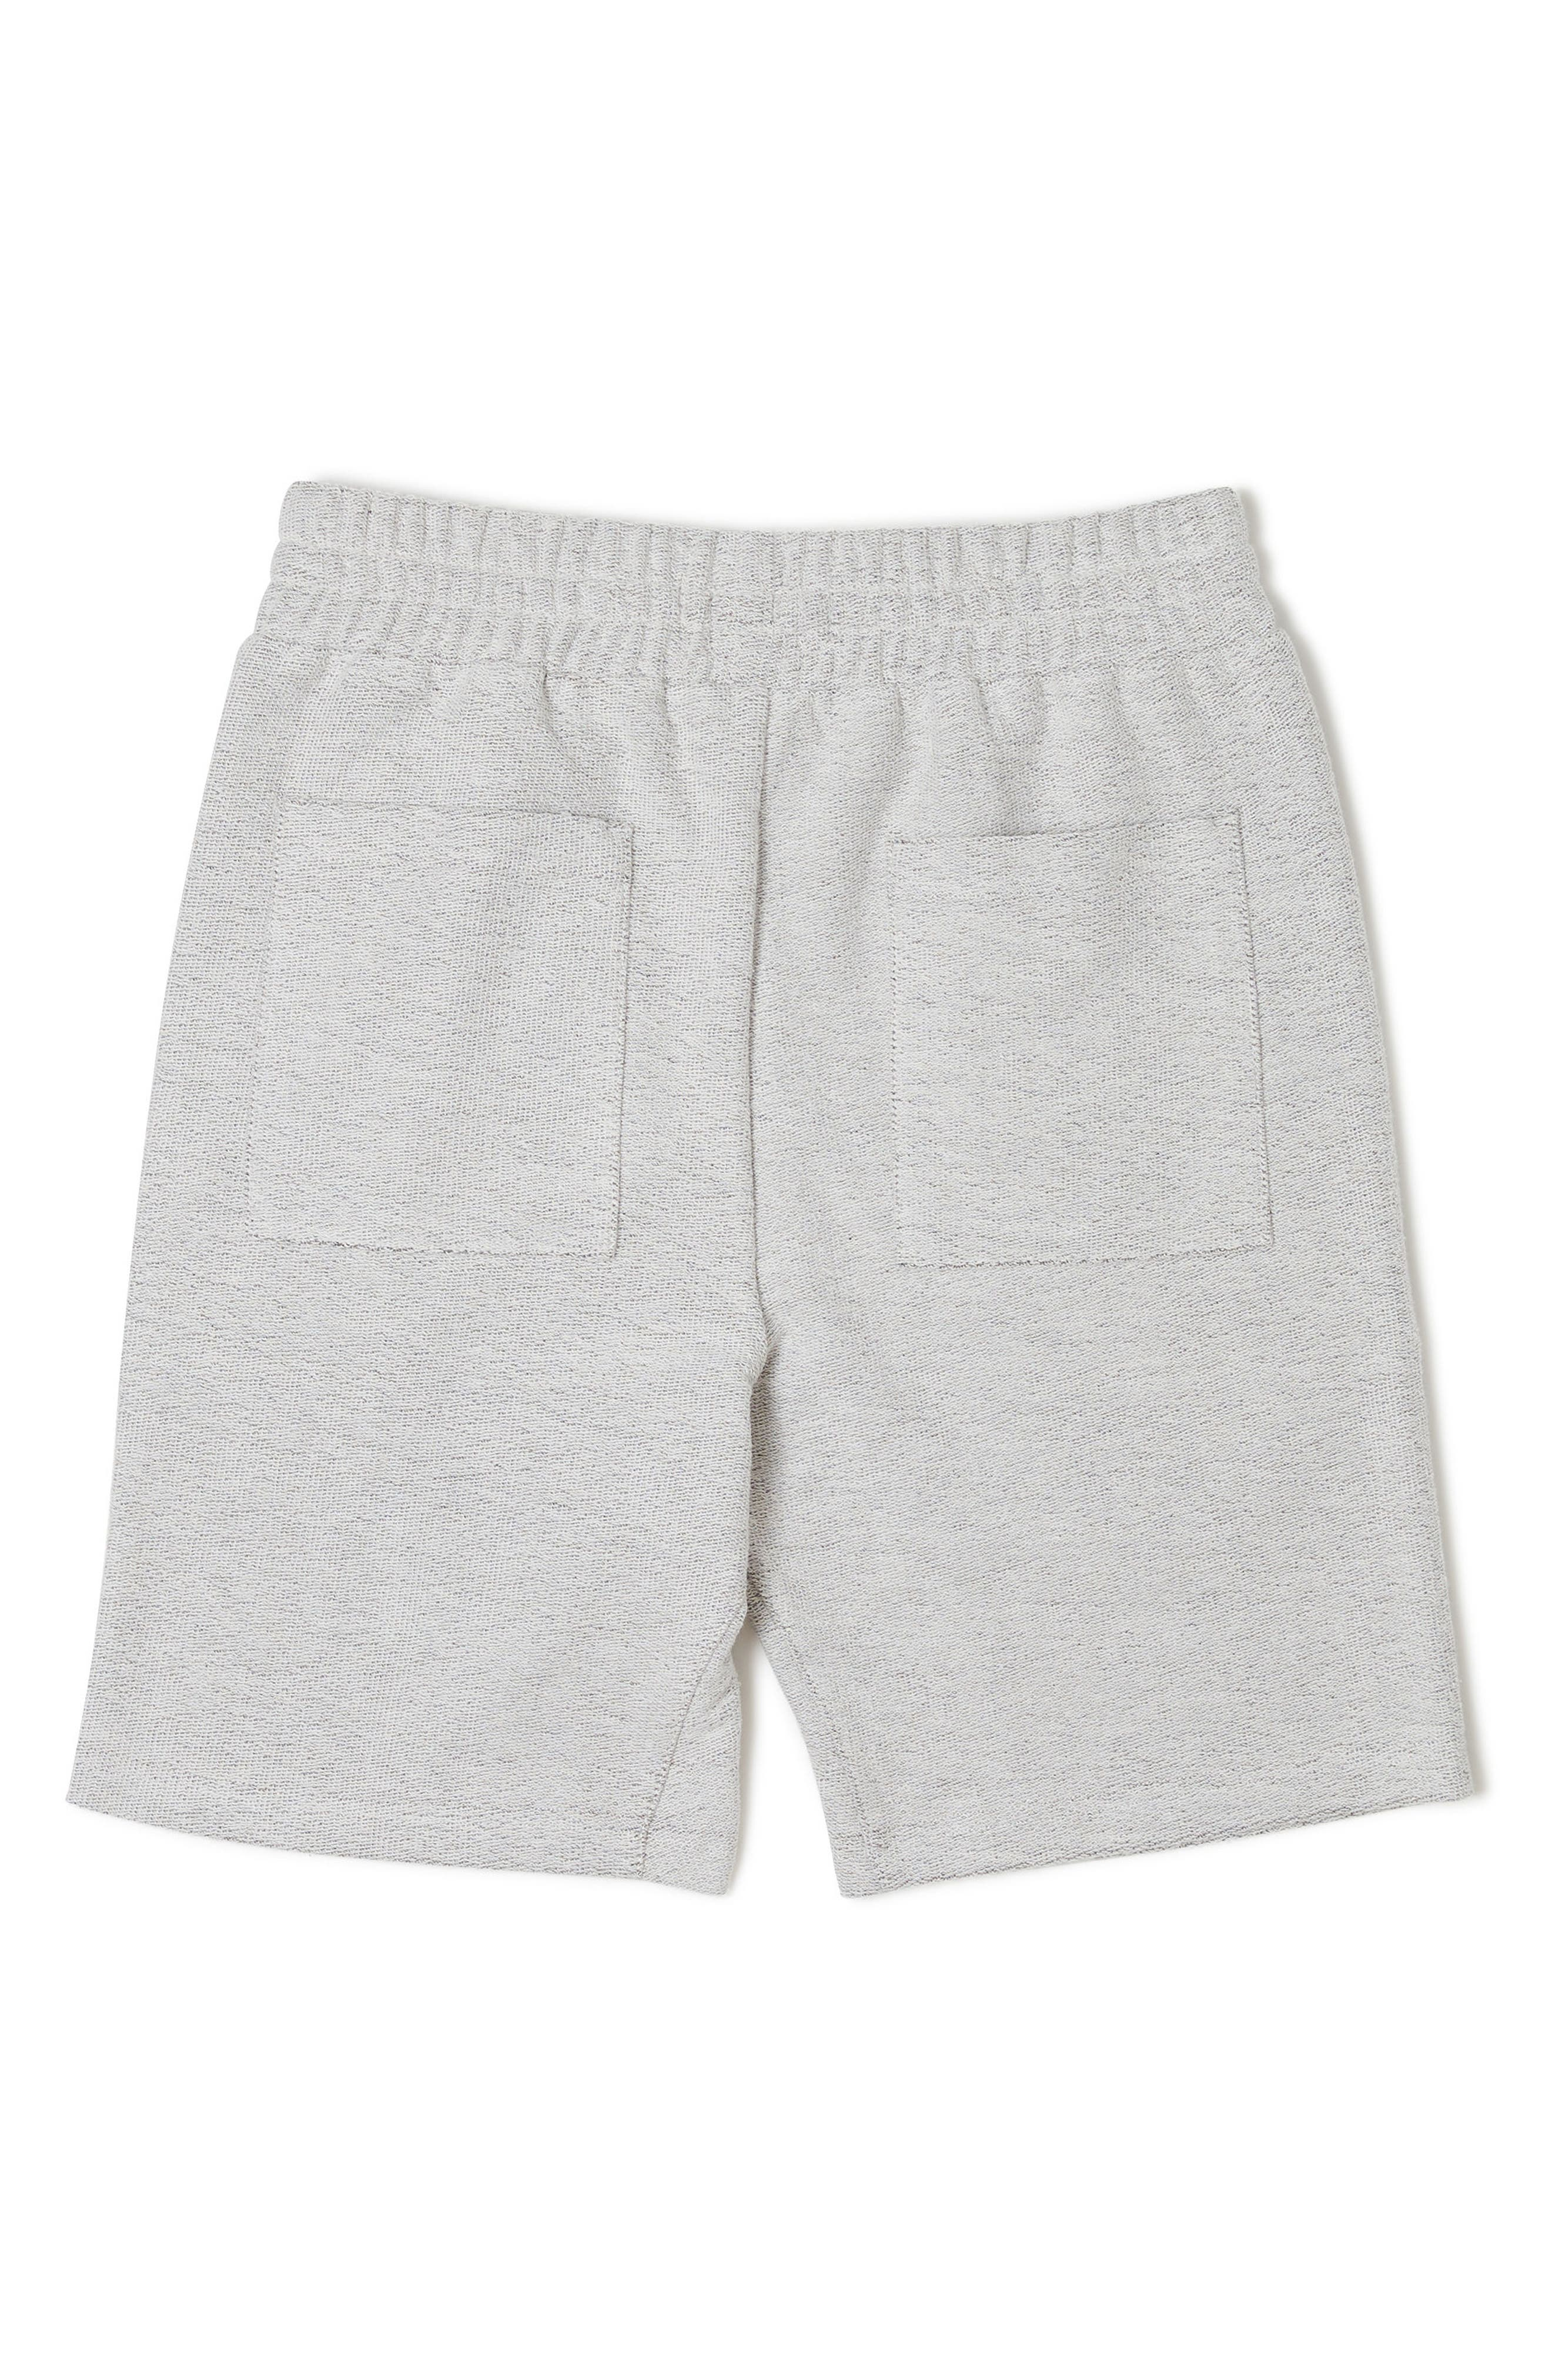 Cruise Knit Shorts,                             Alternate thumbnail 2, color,                             NATURAL